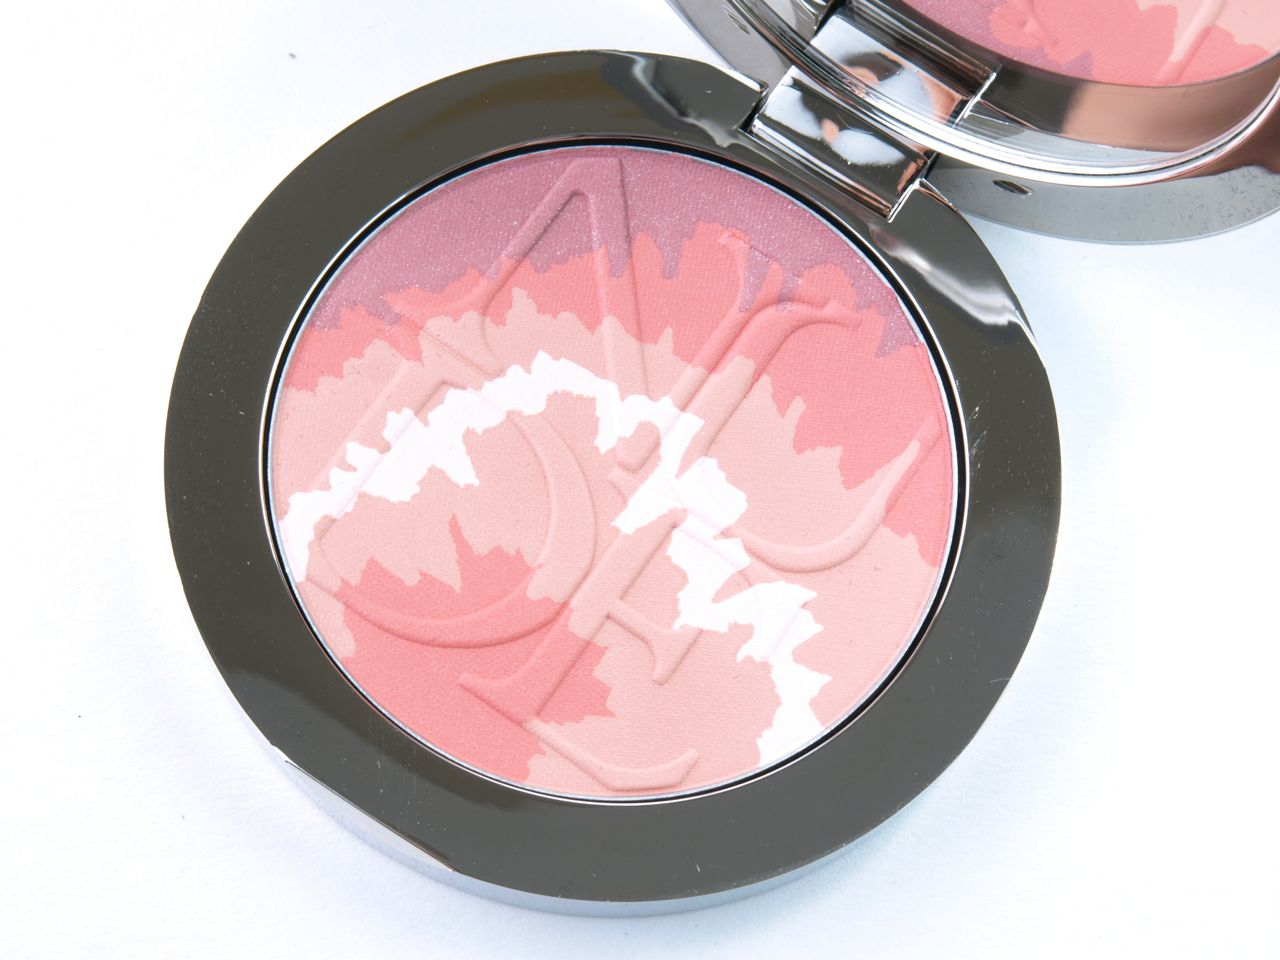 Dior Summer 2015 Tie Dye Collection DiorSkin Nude Tan Blush Harmony: Review and Swatches